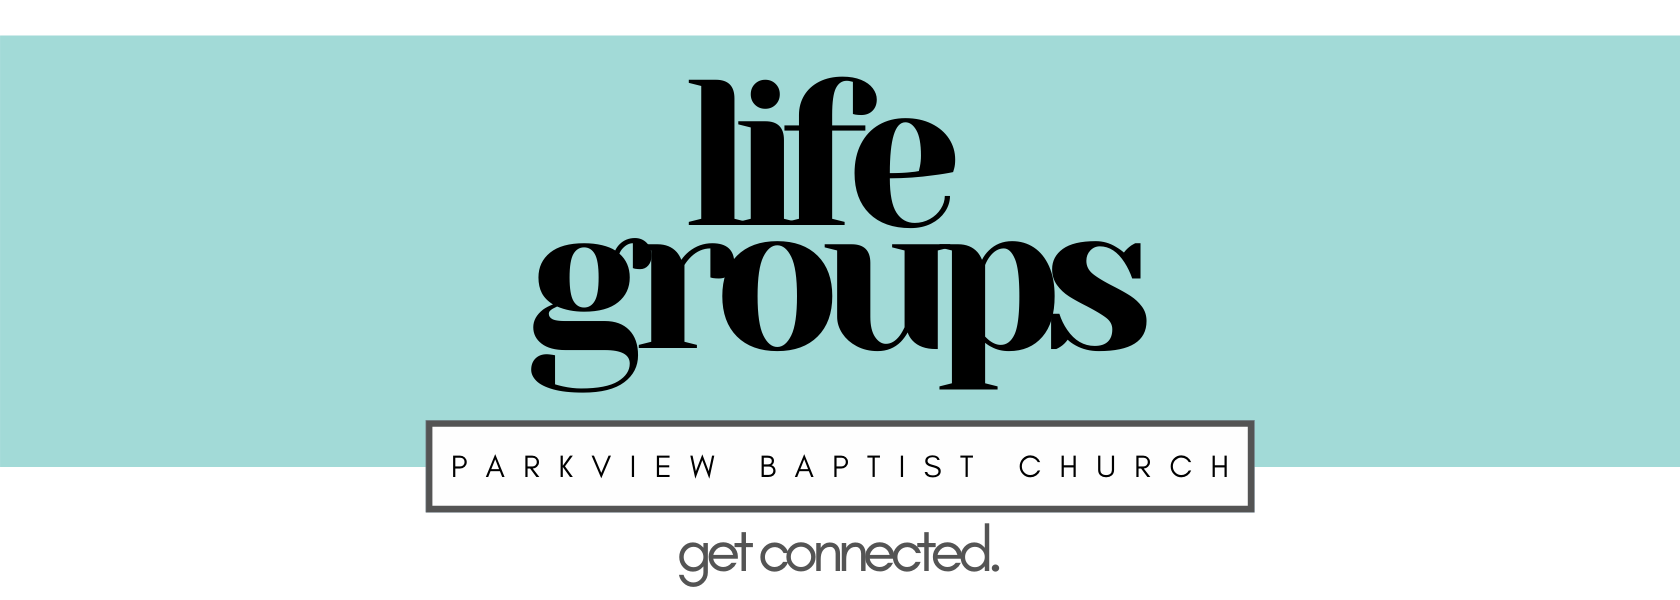 lifegroups header 1